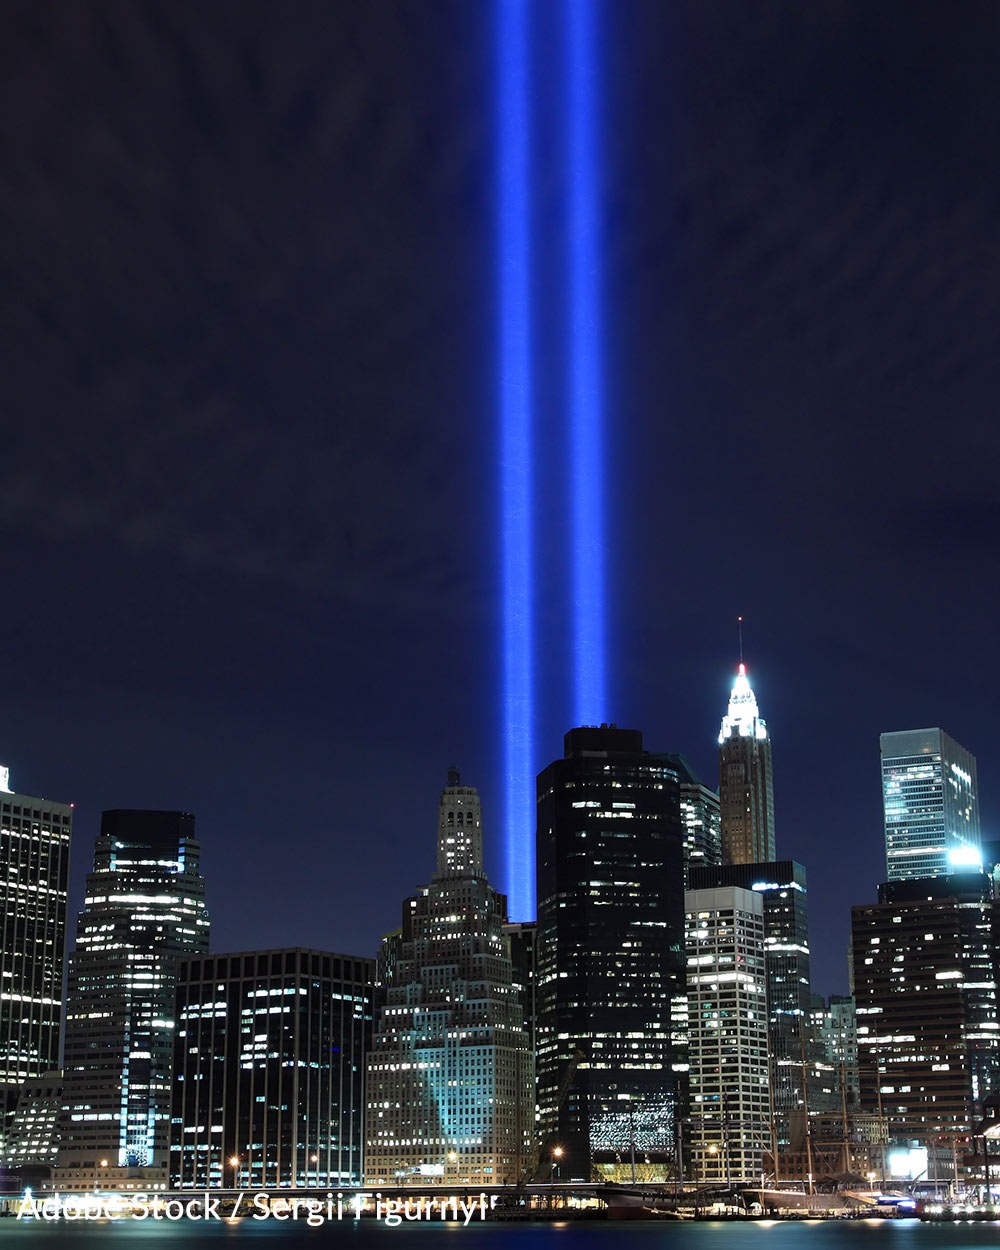 Even after two decades, all Americans are affected by the terrorist attacks of 9/11.